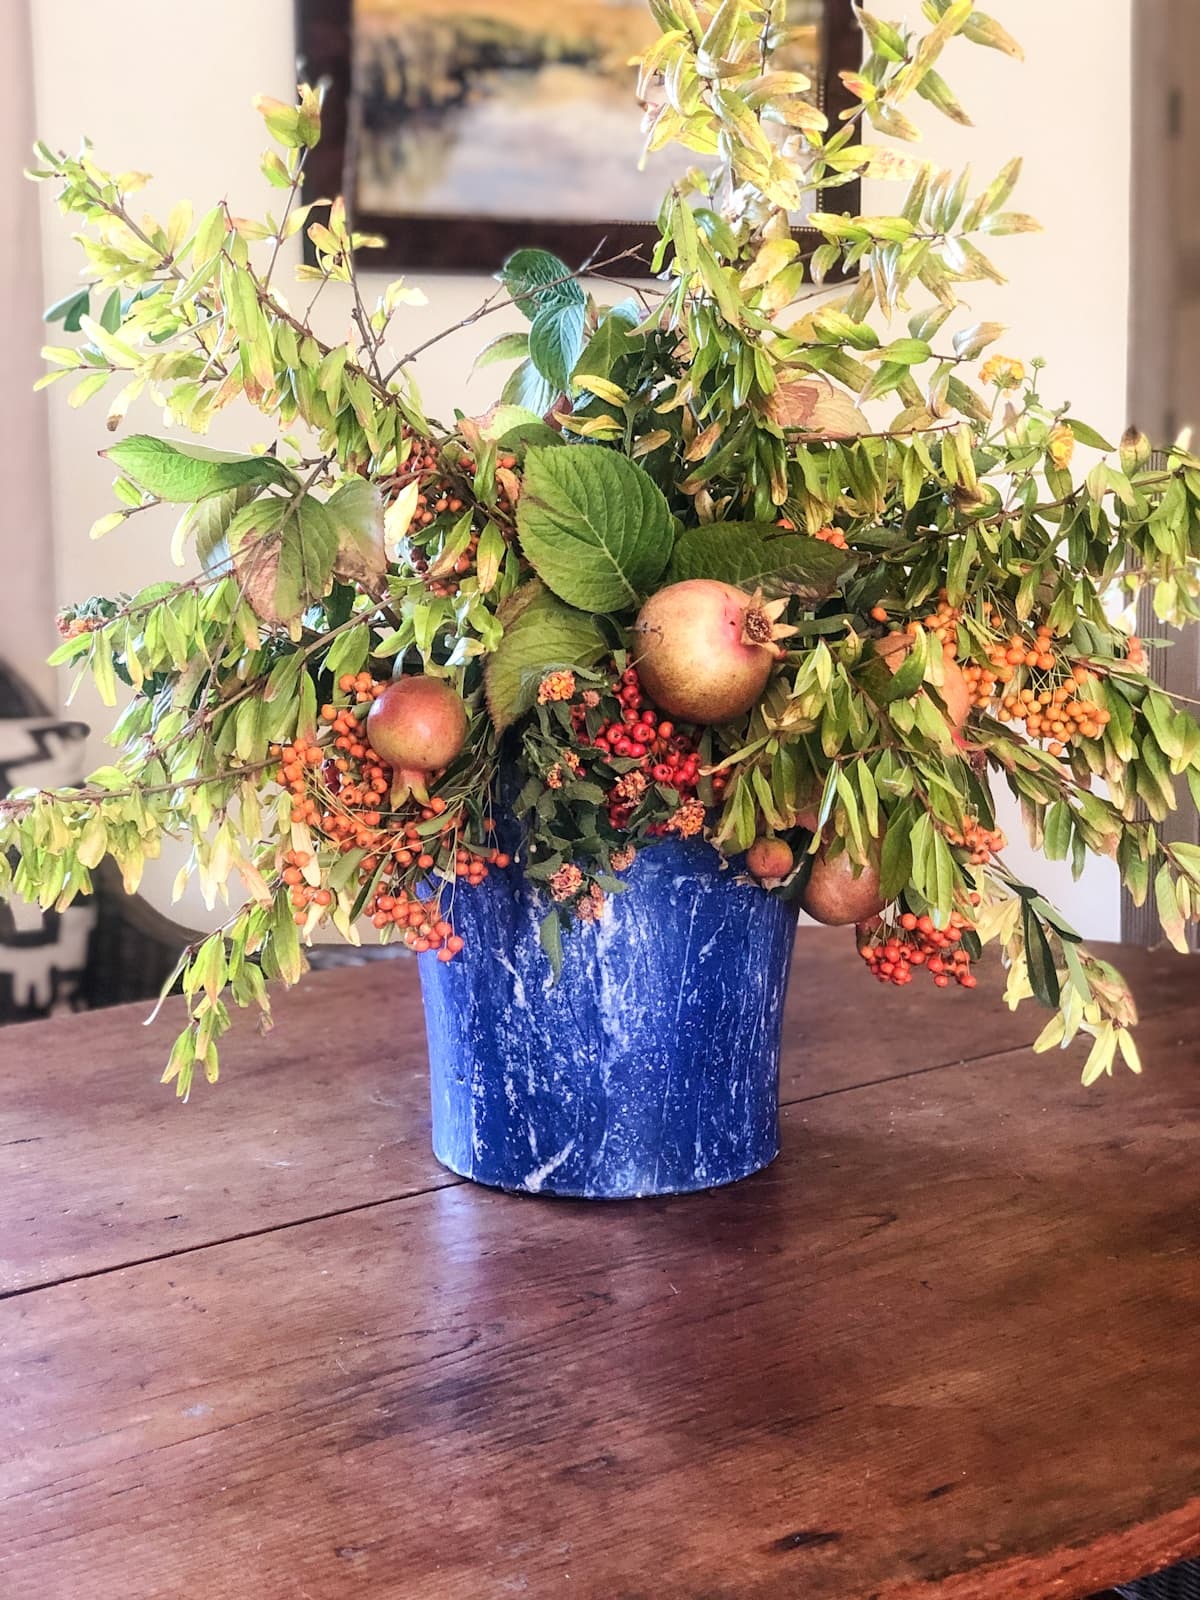 cindy hattersley creates a simple diy floral arrangement with foraged florals